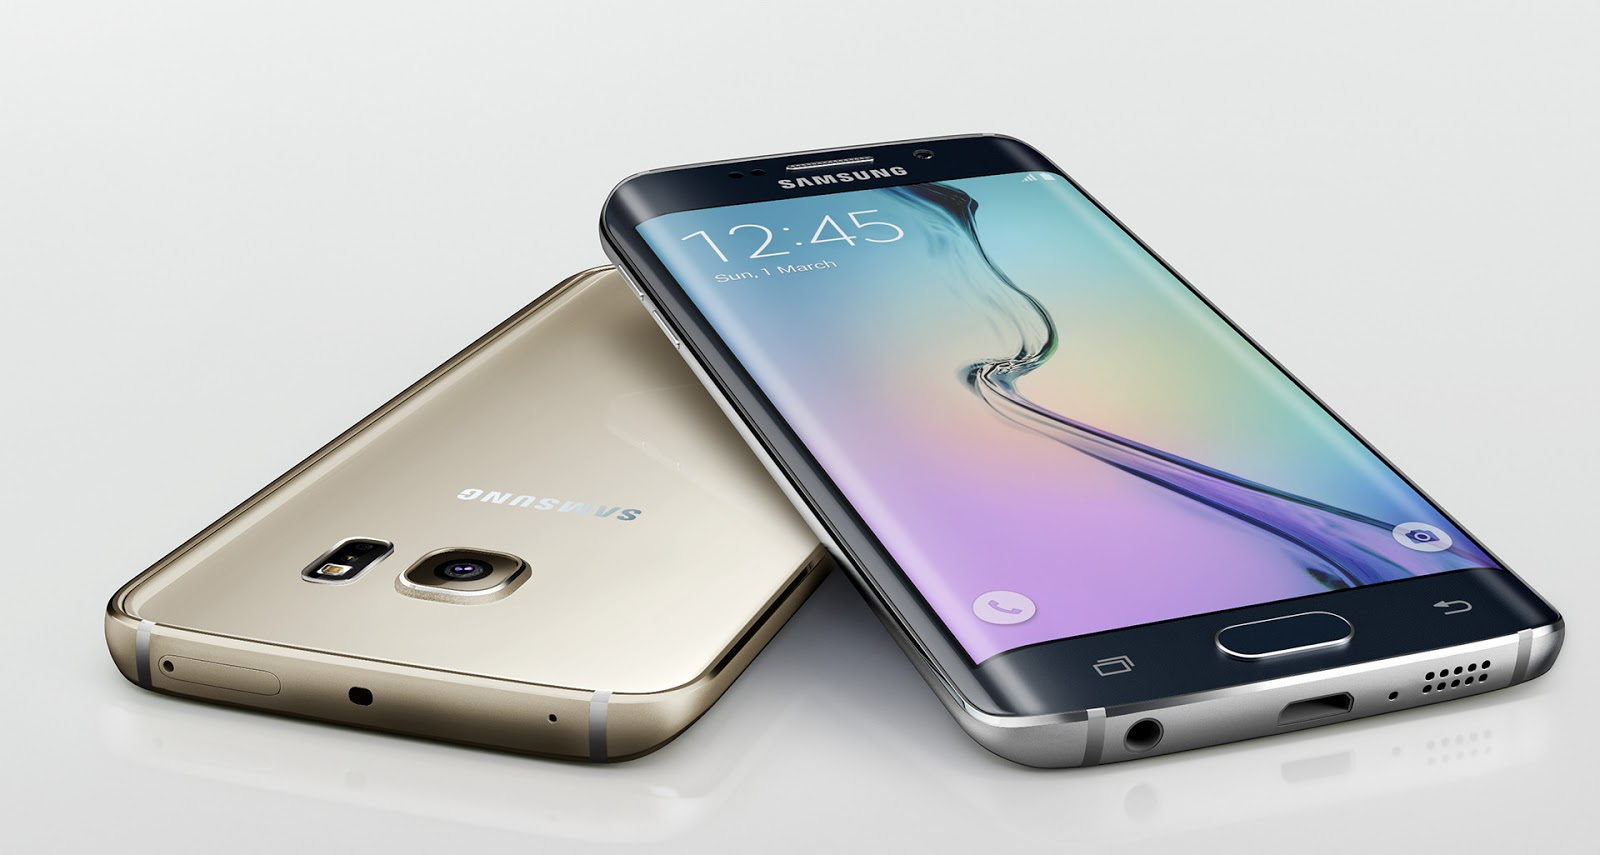 Galaxy S6 Edge+ is exquisitely crafted